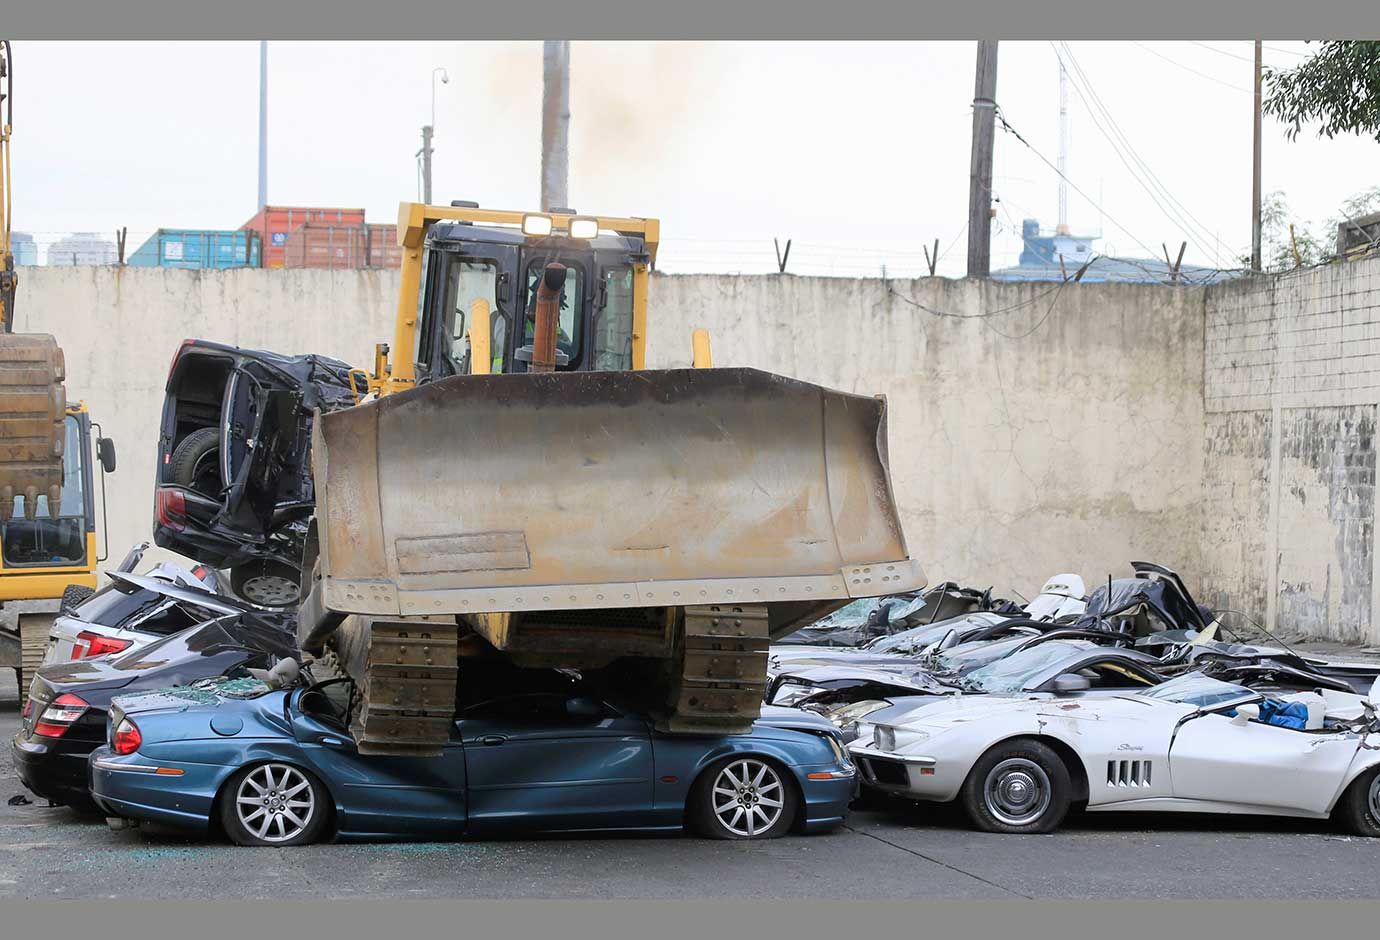 A total of 30 luxury vehicles worth a combined 61.6 million pesos ($1.2 million) were scrapped in Ma